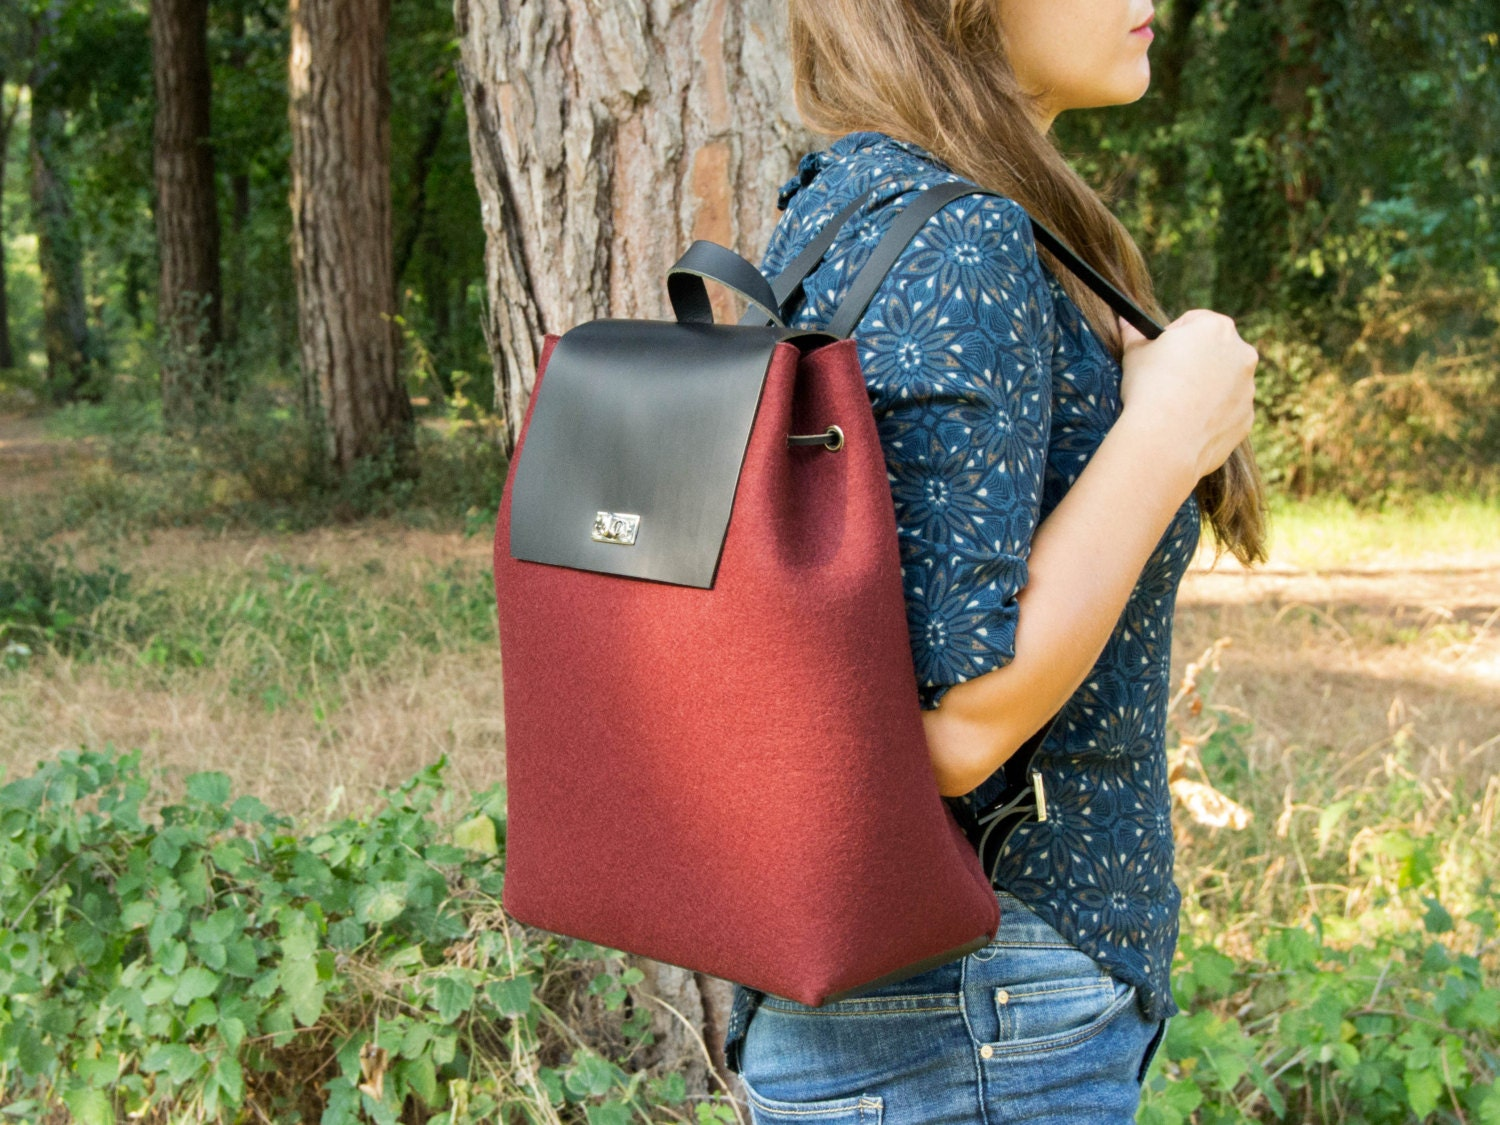 Felt and leather BACKPACK   women s backpack   felt backpack   red backpack    woman backpack   wool felt   handmade in Italy 17fe48c728e7c